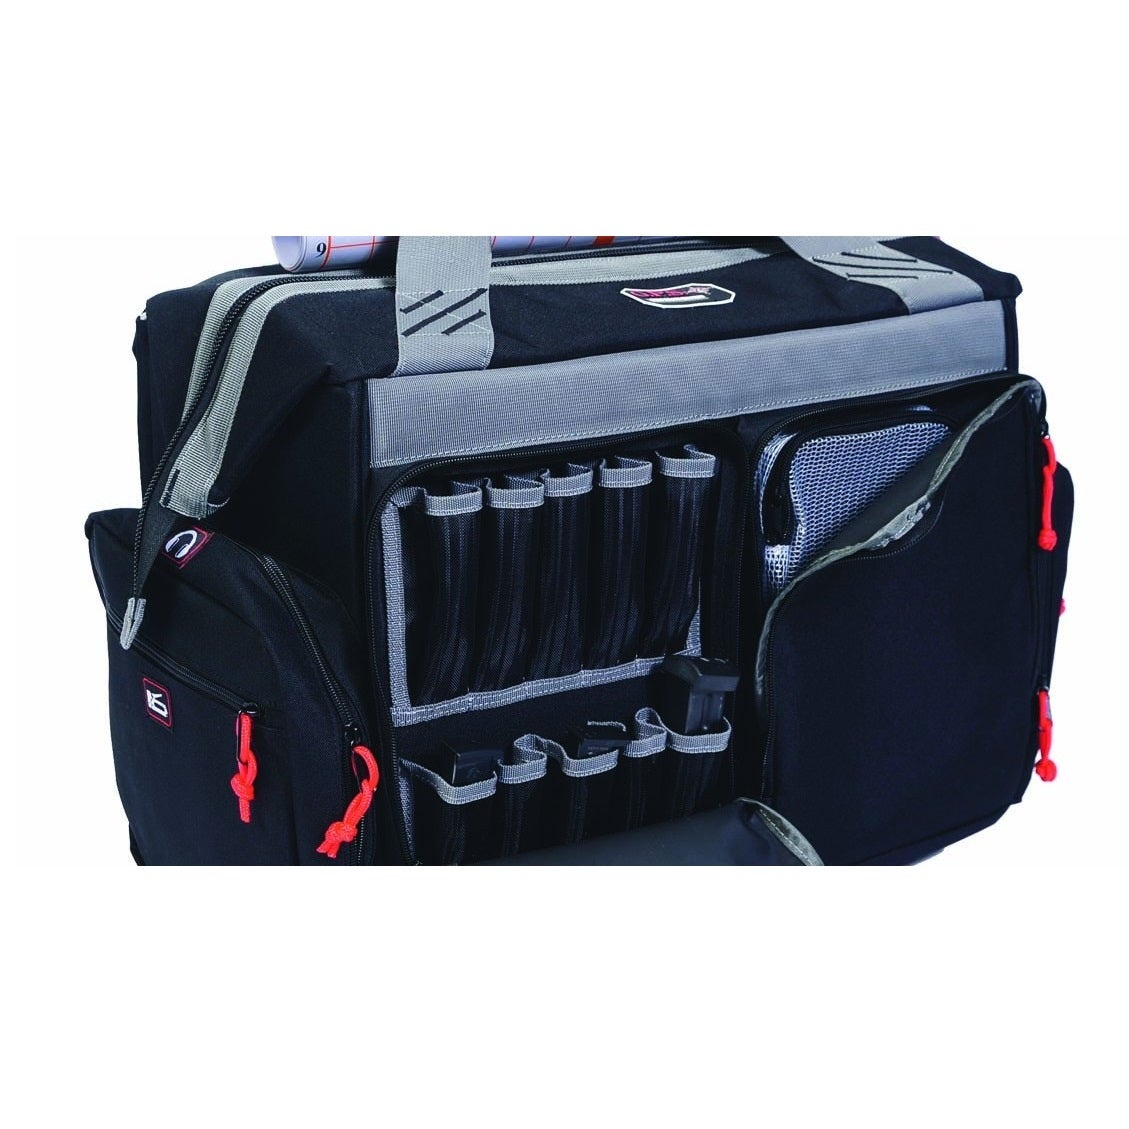 G P S Rolling Range Bag Black Gps 2215rb Free Shipping Today 16175191